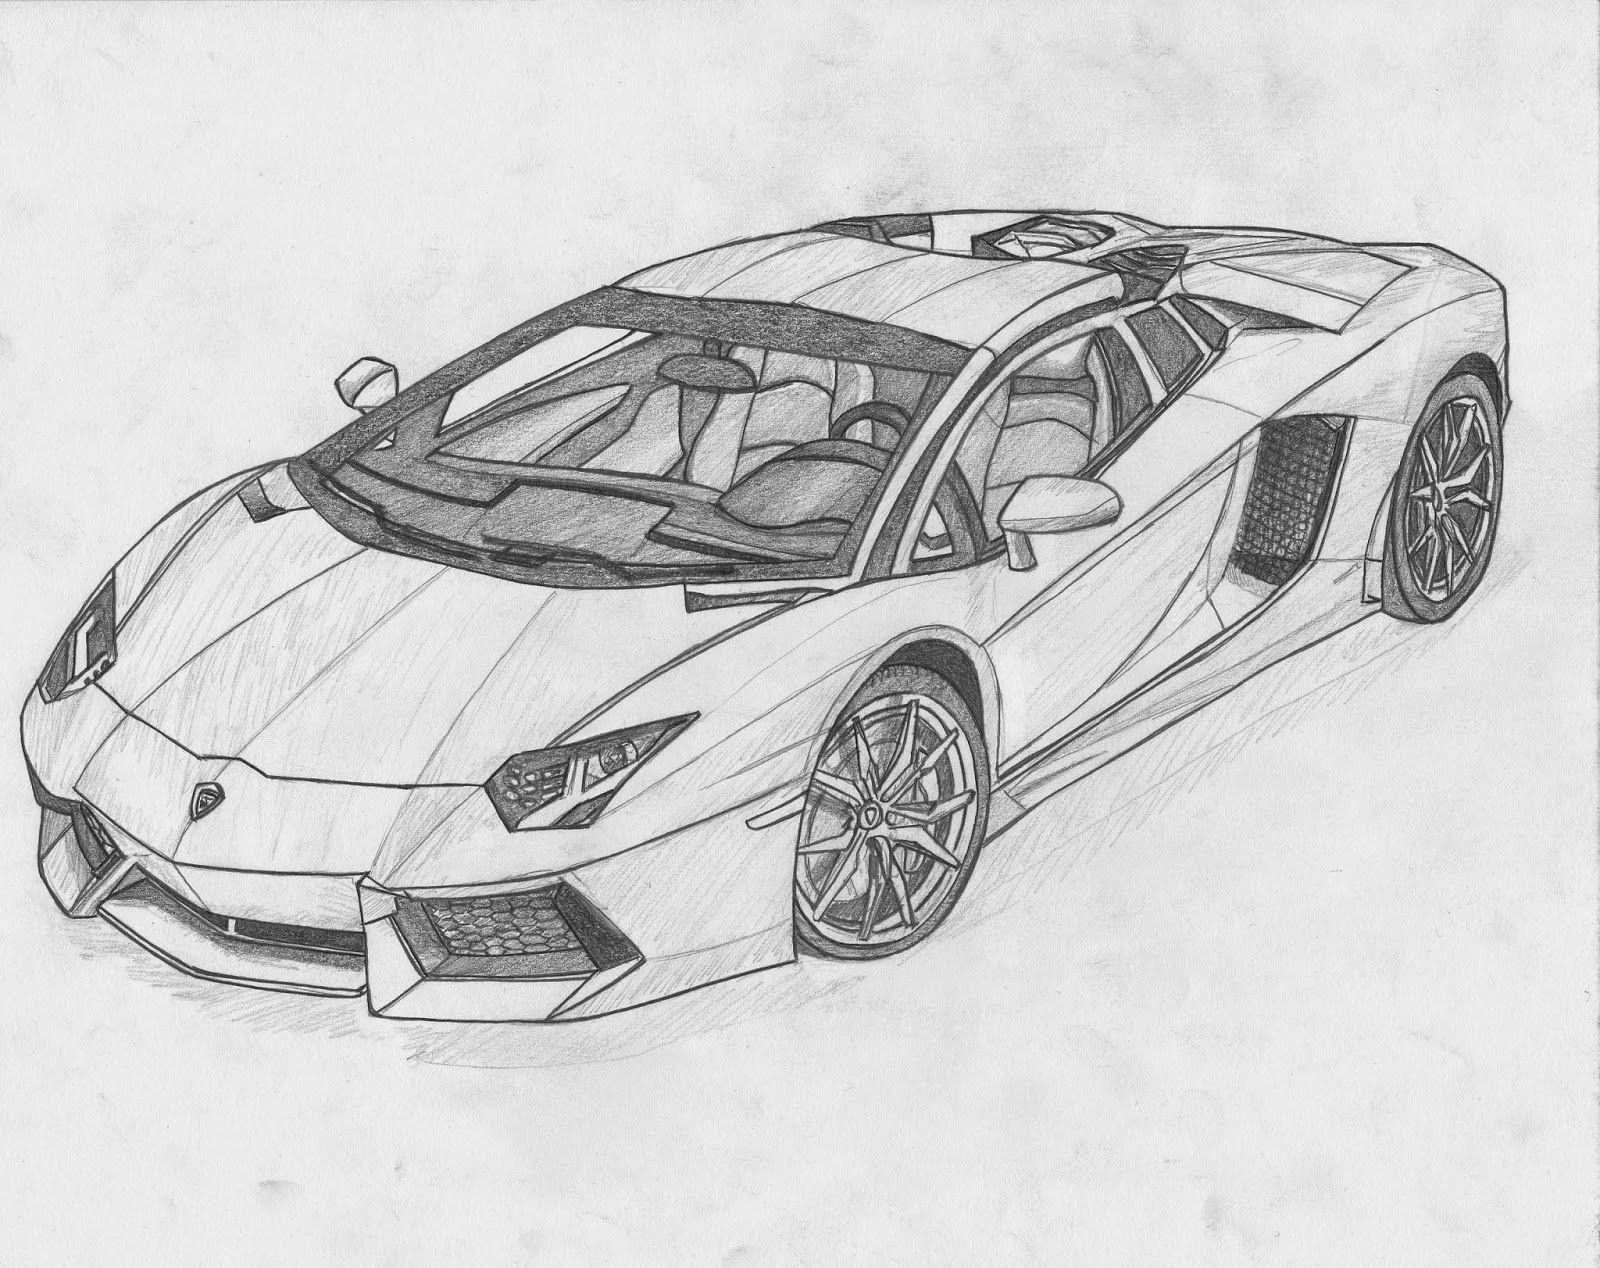 3d Object Pencil Drawing Book Pdf Lovely Image For Lamborghini Aventador Black And White Drawing Cool Car Drawings Car Drawings Car Drawing Pencil